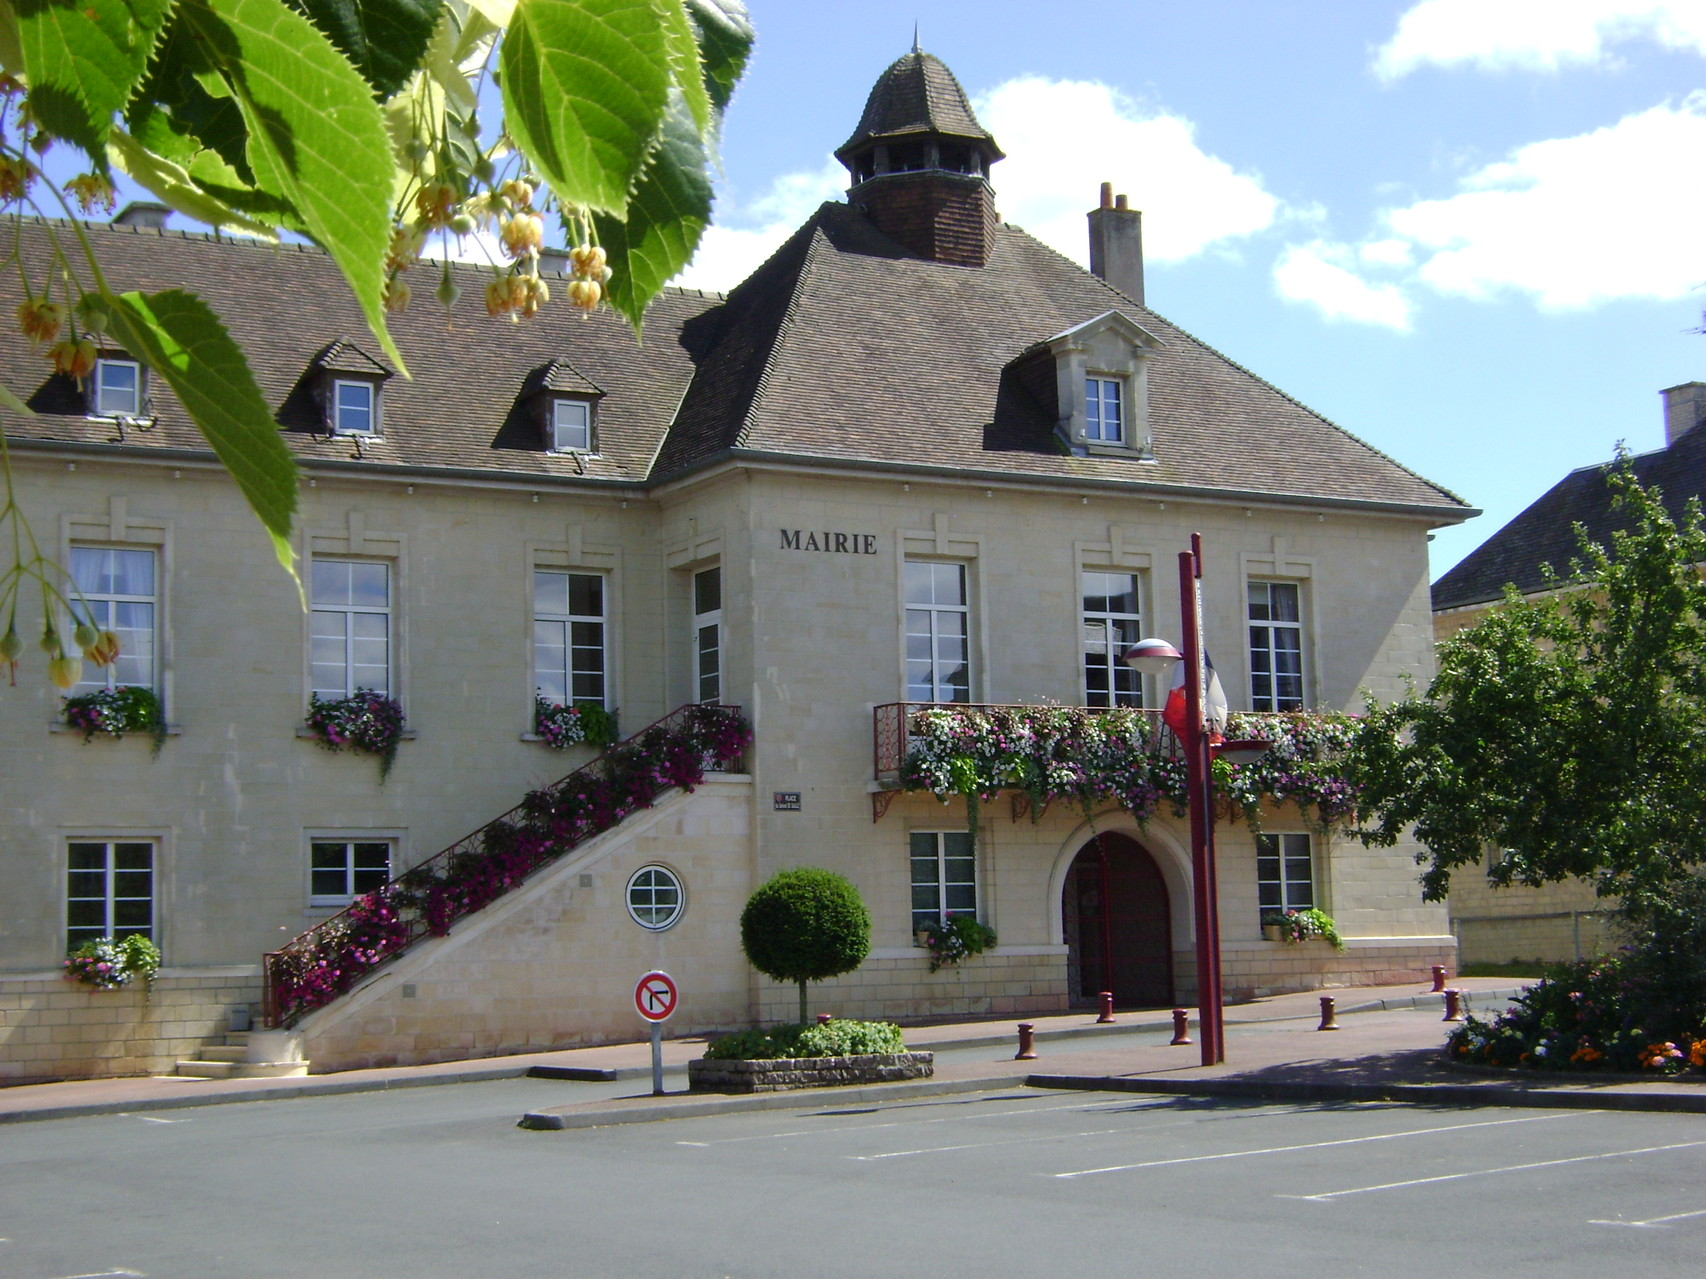 Mairie d'Evrecy